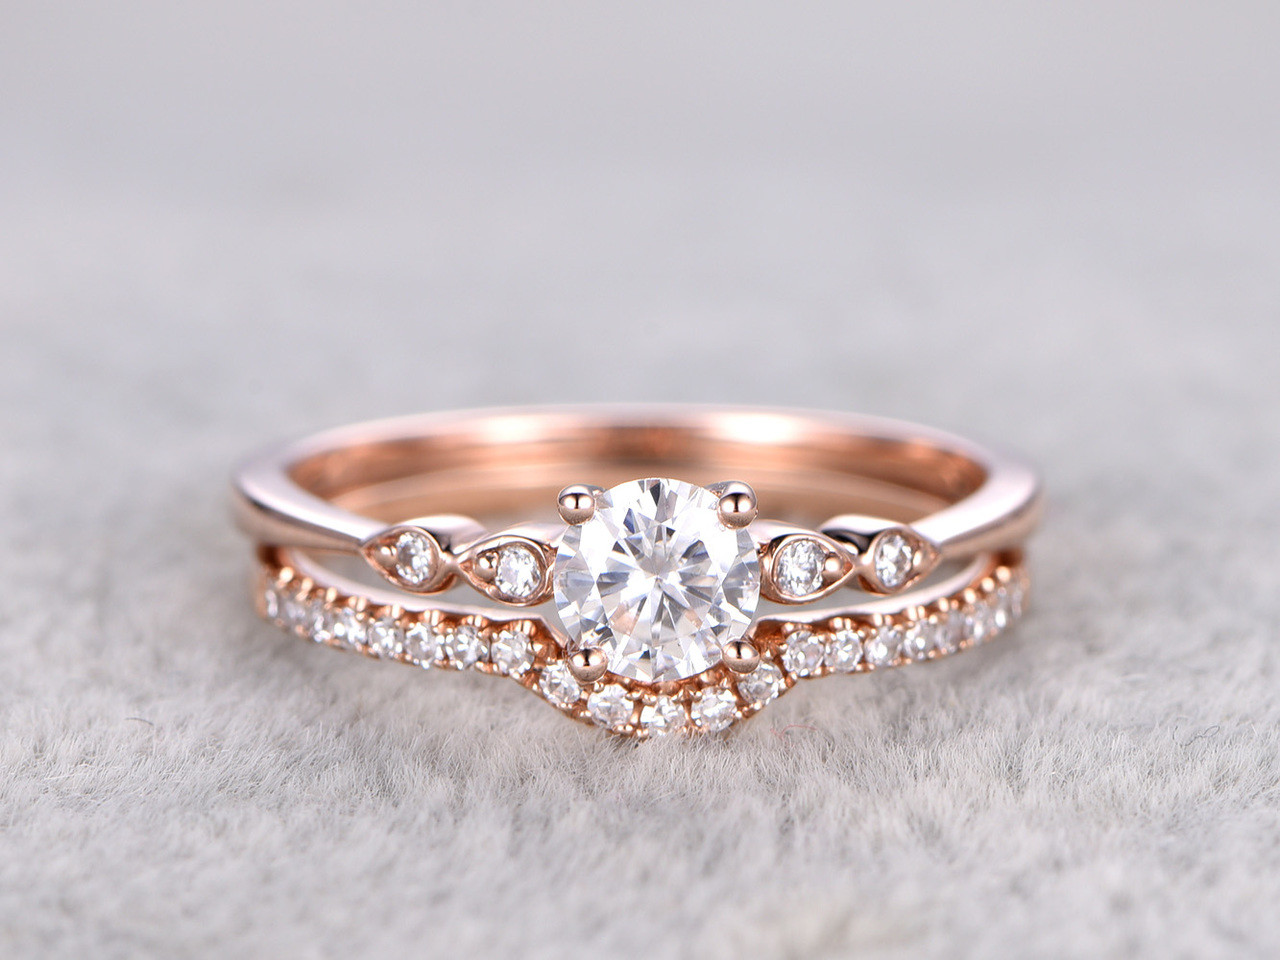 Outstanding Anne Hathaway Wedding Ring Composition The Wedding